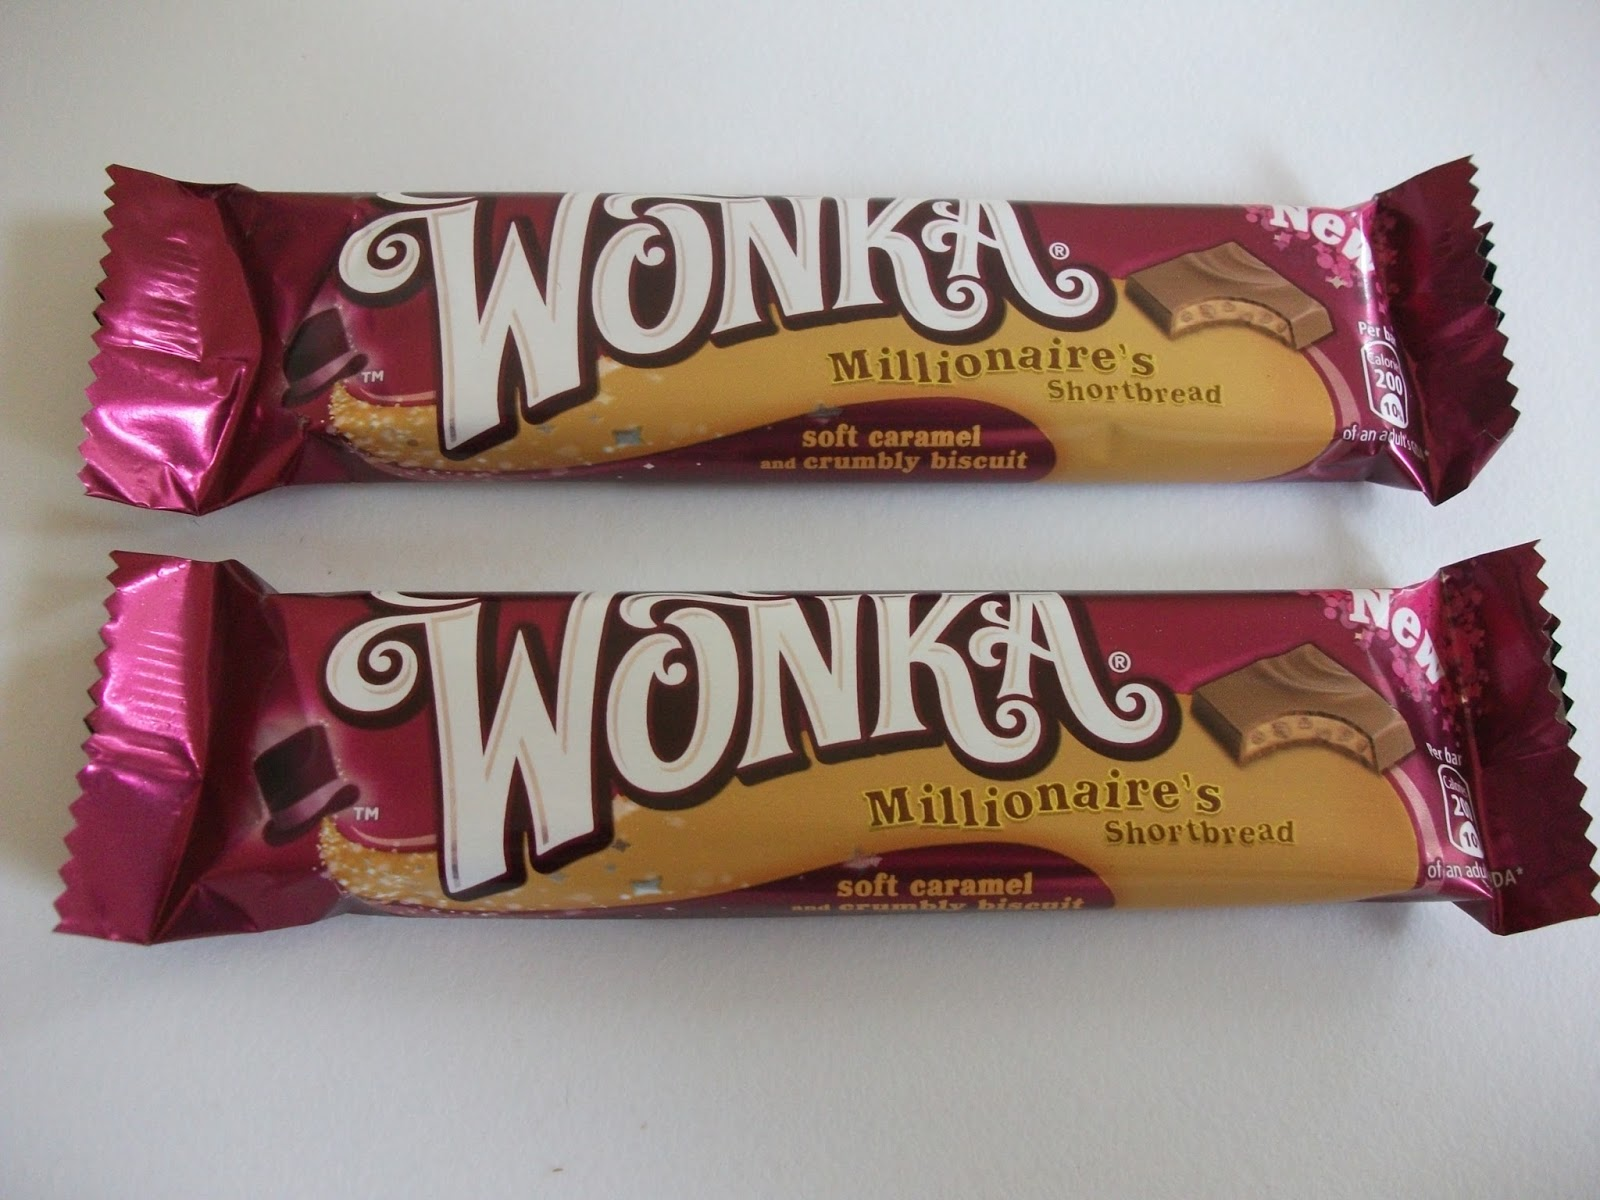 Wonka Chocolate Bar Uk Image Gallery - HCPR